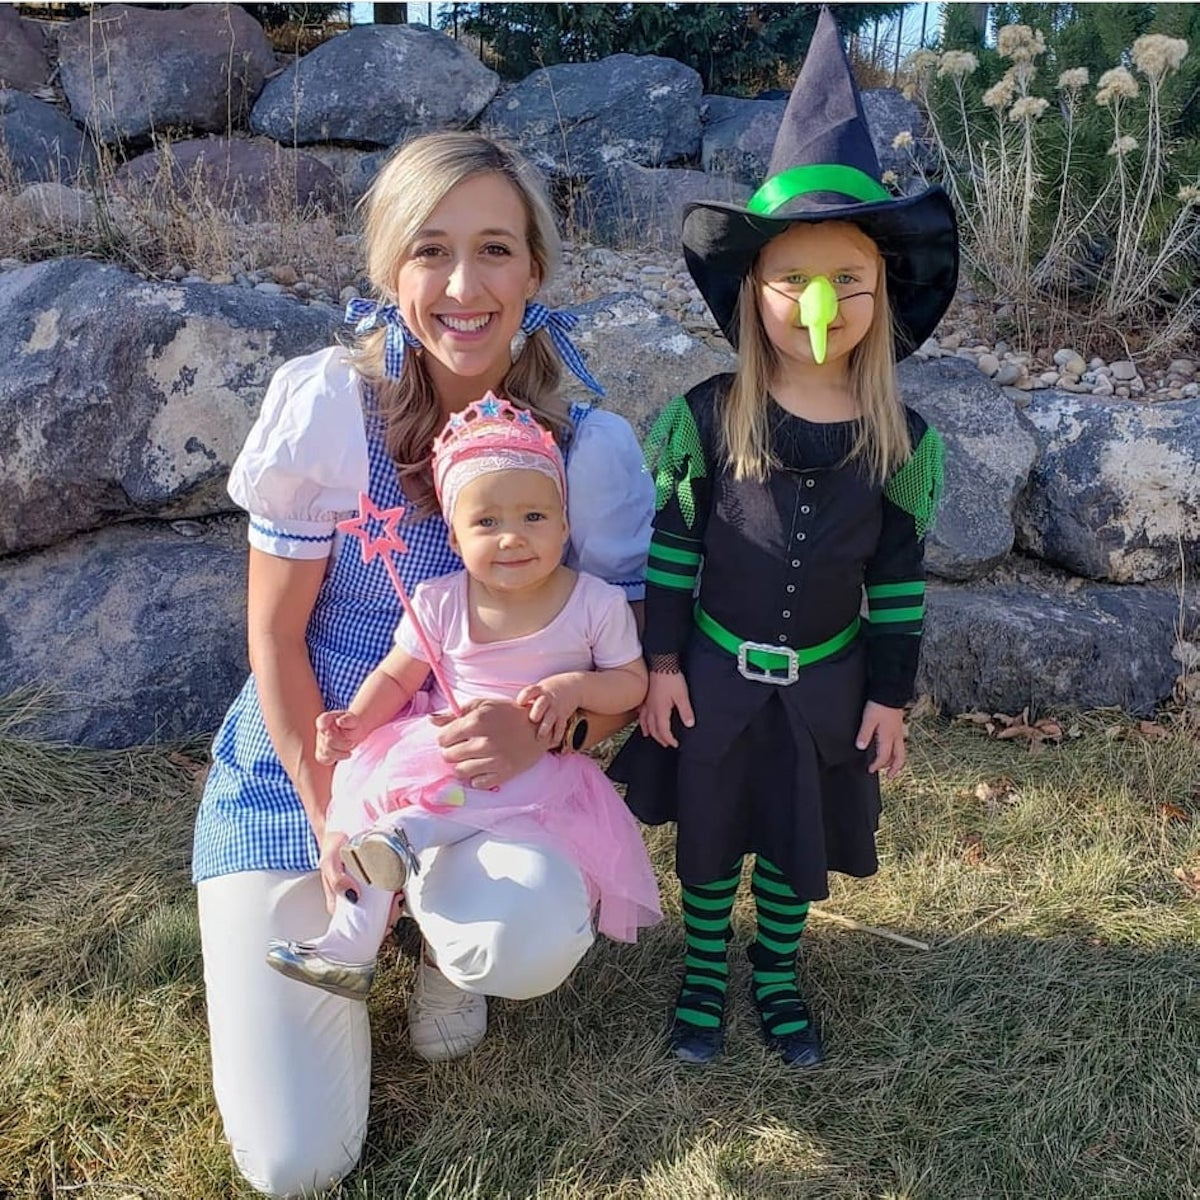 Woman and two girls wearing Wizard of Oz costumes smile in front of rock wall.